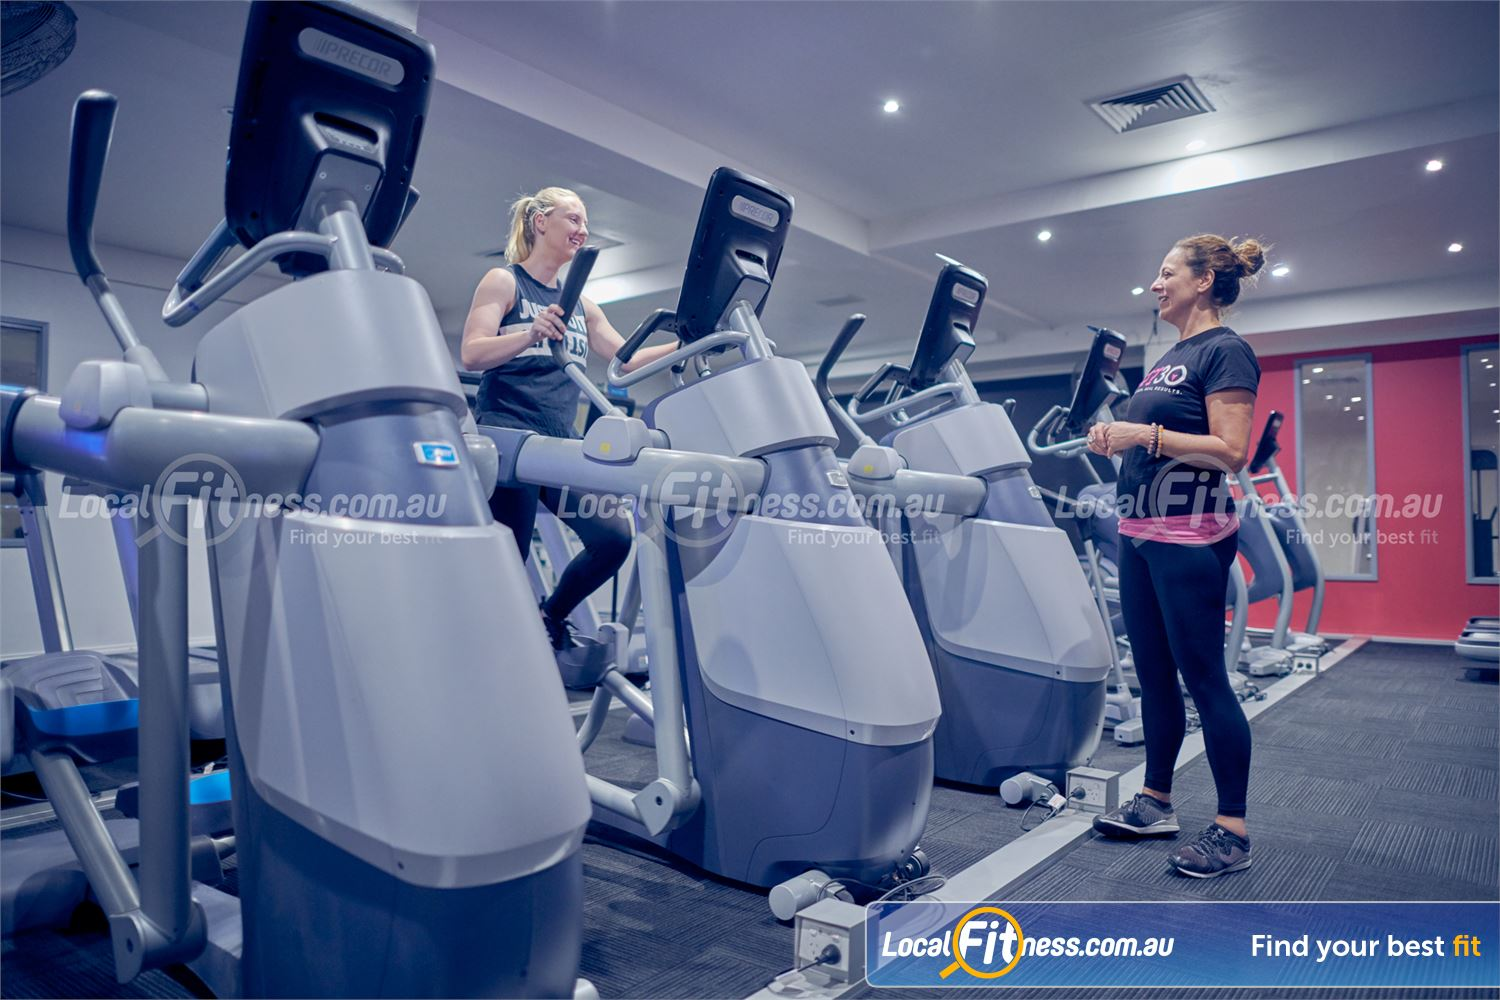 Fernwood Fitness Bulleen Our Bulleen gym team can help you reach your cardio and weight-loss goals.